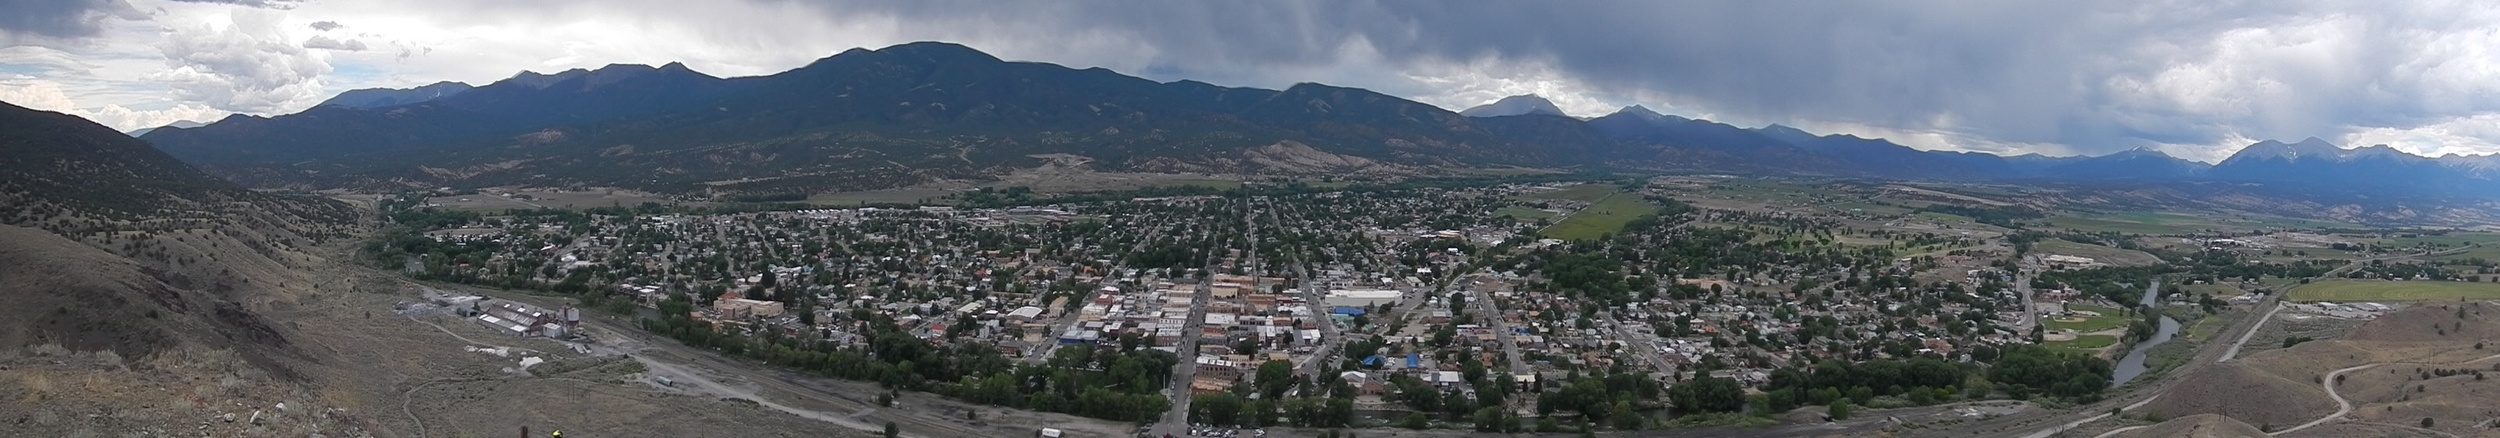 The view of Salida.